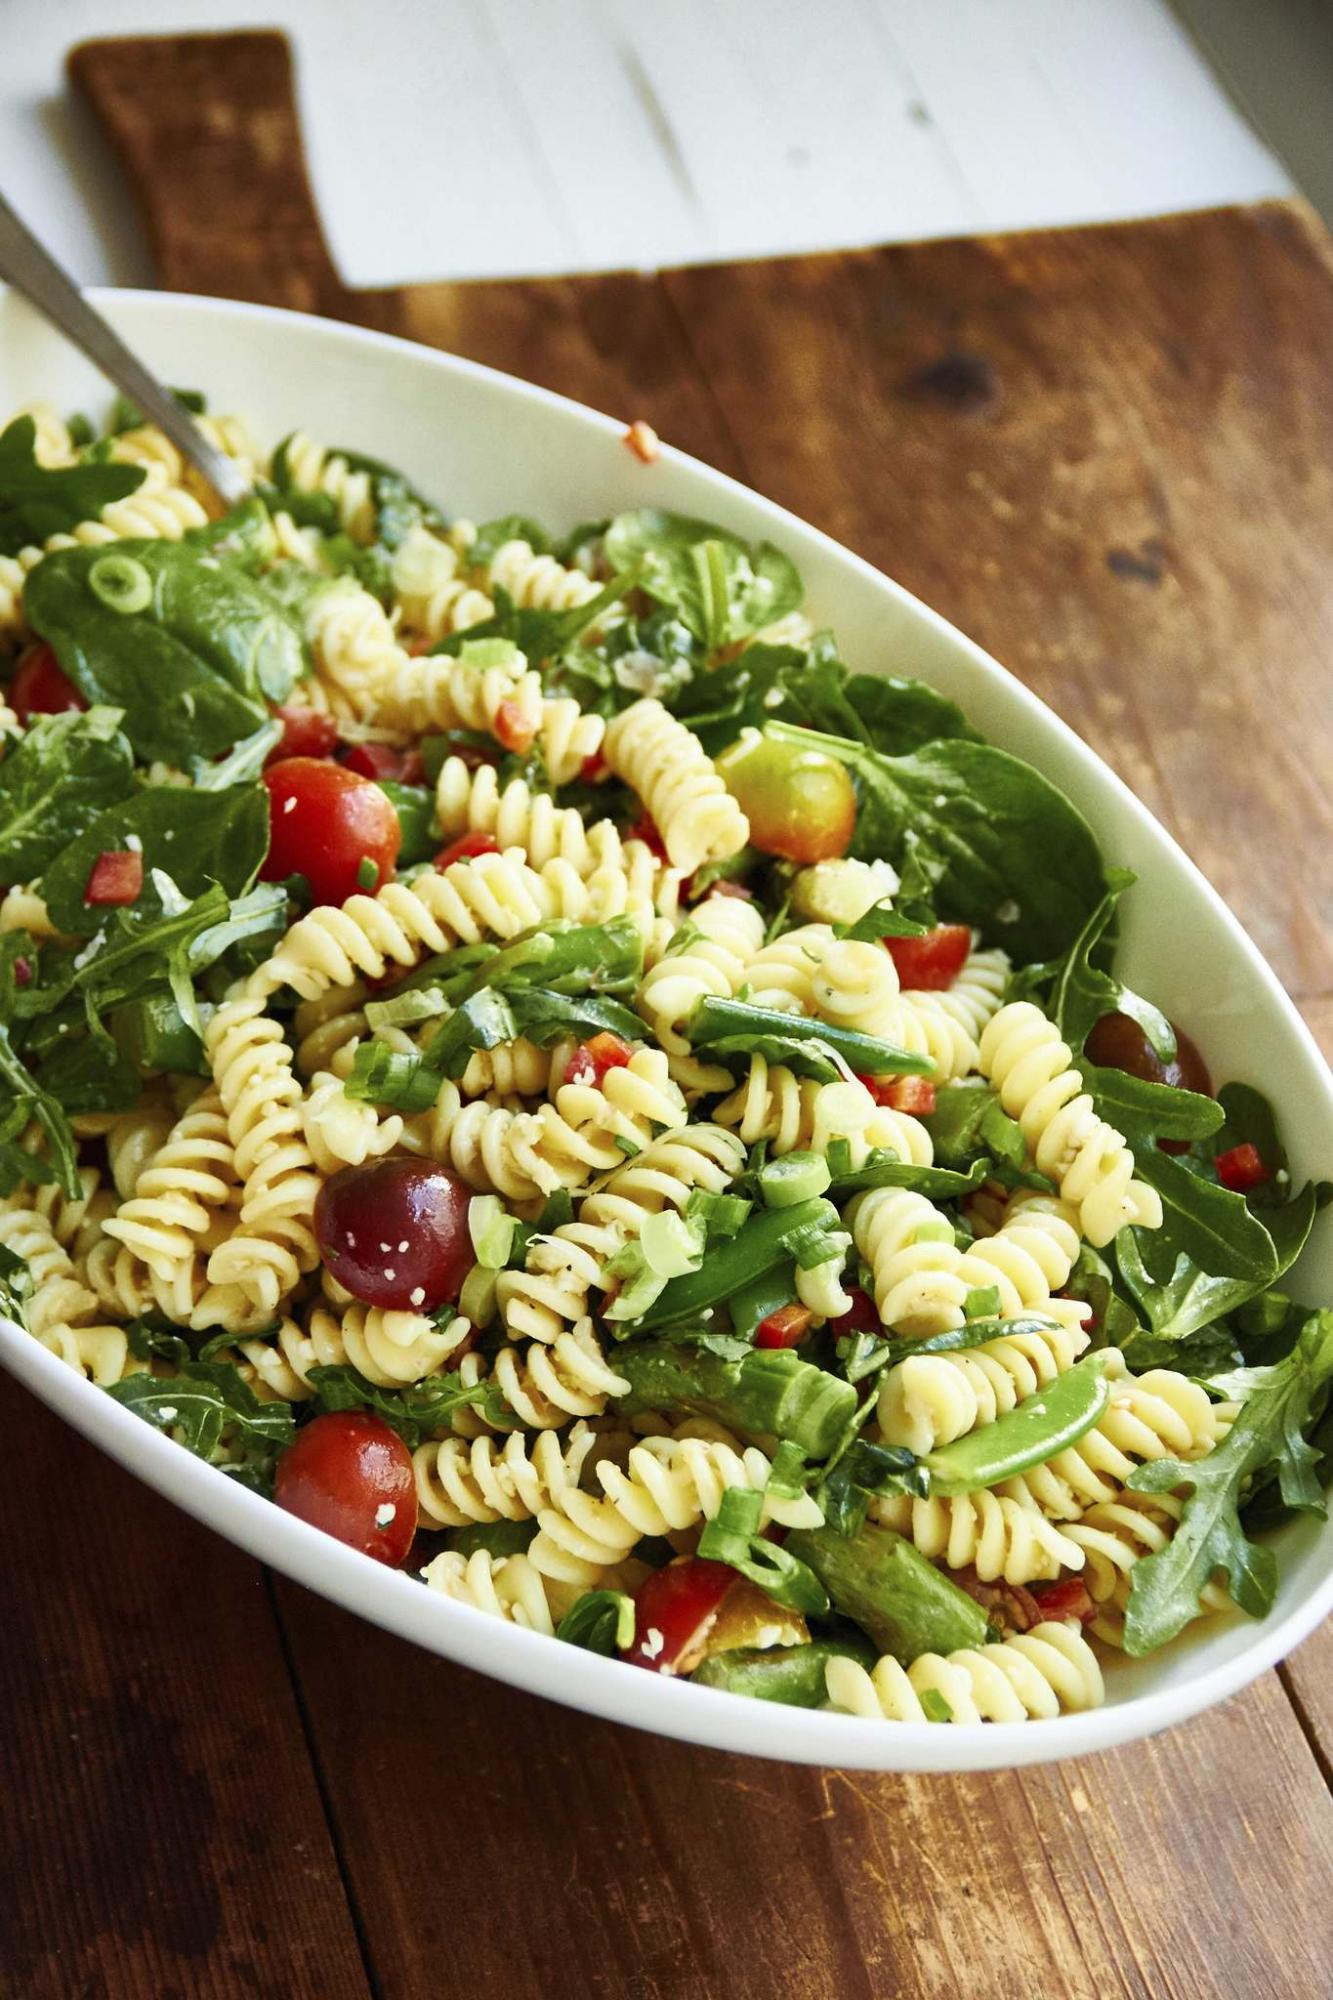 <p>MIA / AP files</p><p>Toss pasta salad with dressing while it is still warm — the noodles will absorb the dressing, making it more flavourful.</p>